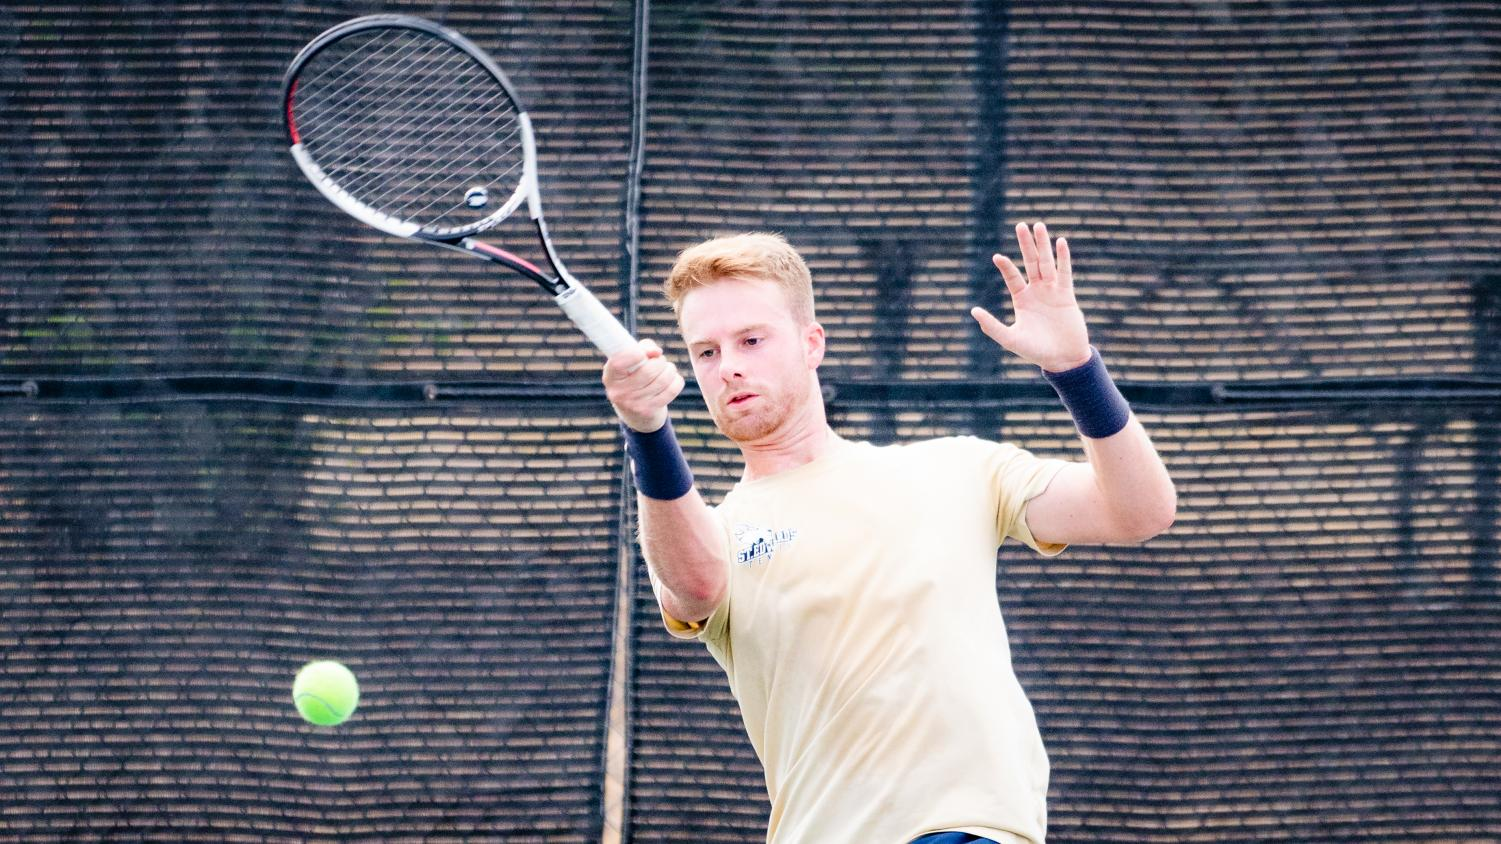 Senior Zac Robinson strikes a forehand shot during a match. Robinson earned the Lonestar Conference Player of the Week for his three victories during last weekend's doubleheader.